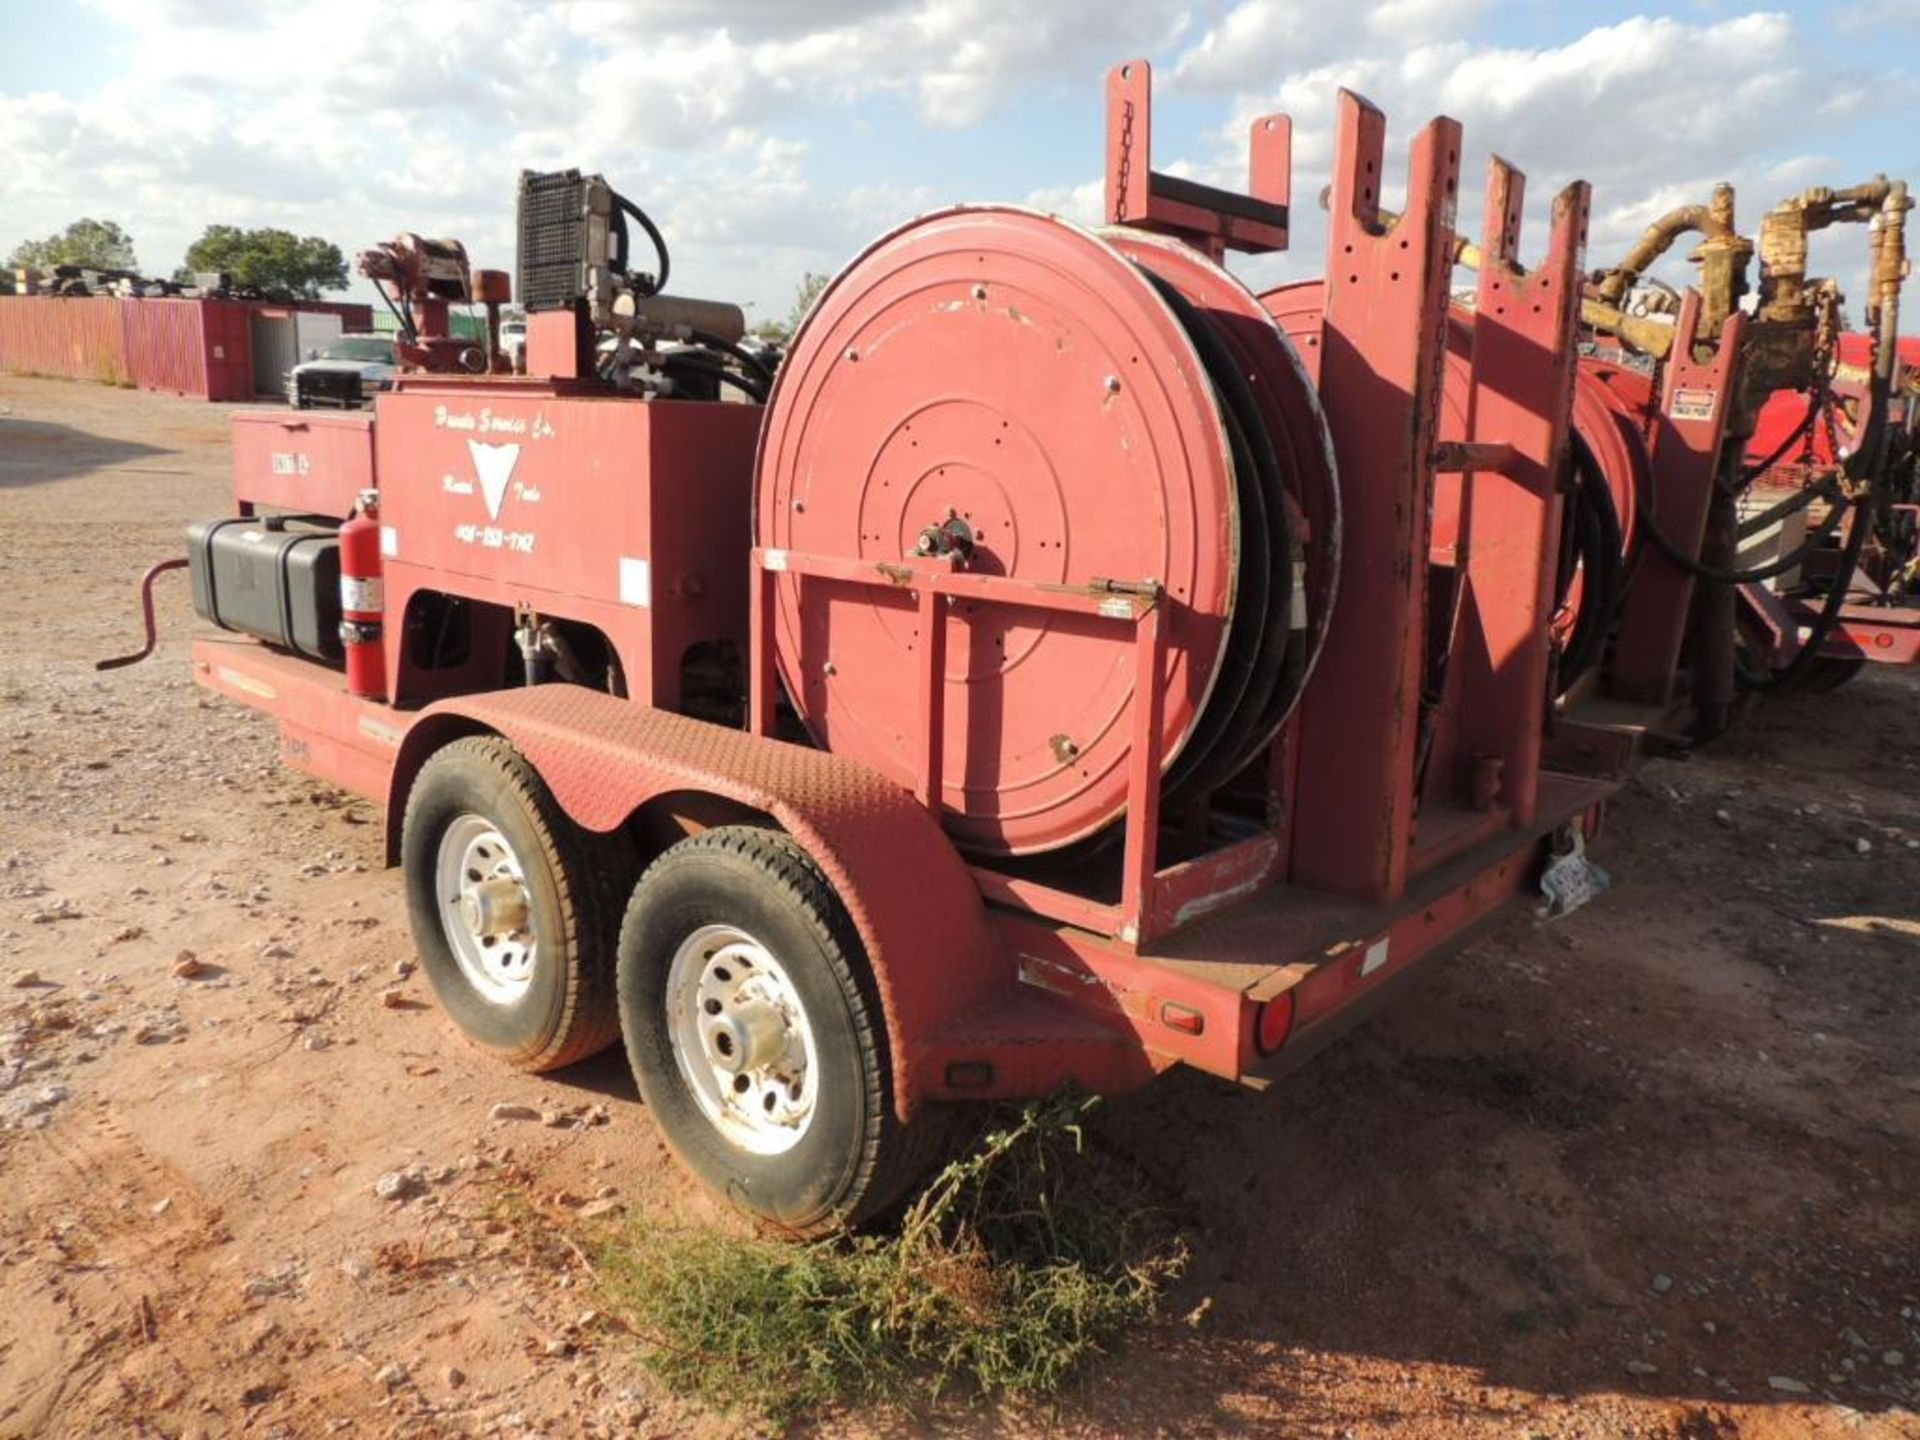 Power Swivel Trailer 2012 Springer Trailer 6 Ft. x 14 Ft. T/A, w/ King Oil Tools 3PS Rotary Drive - Image 5 of 5